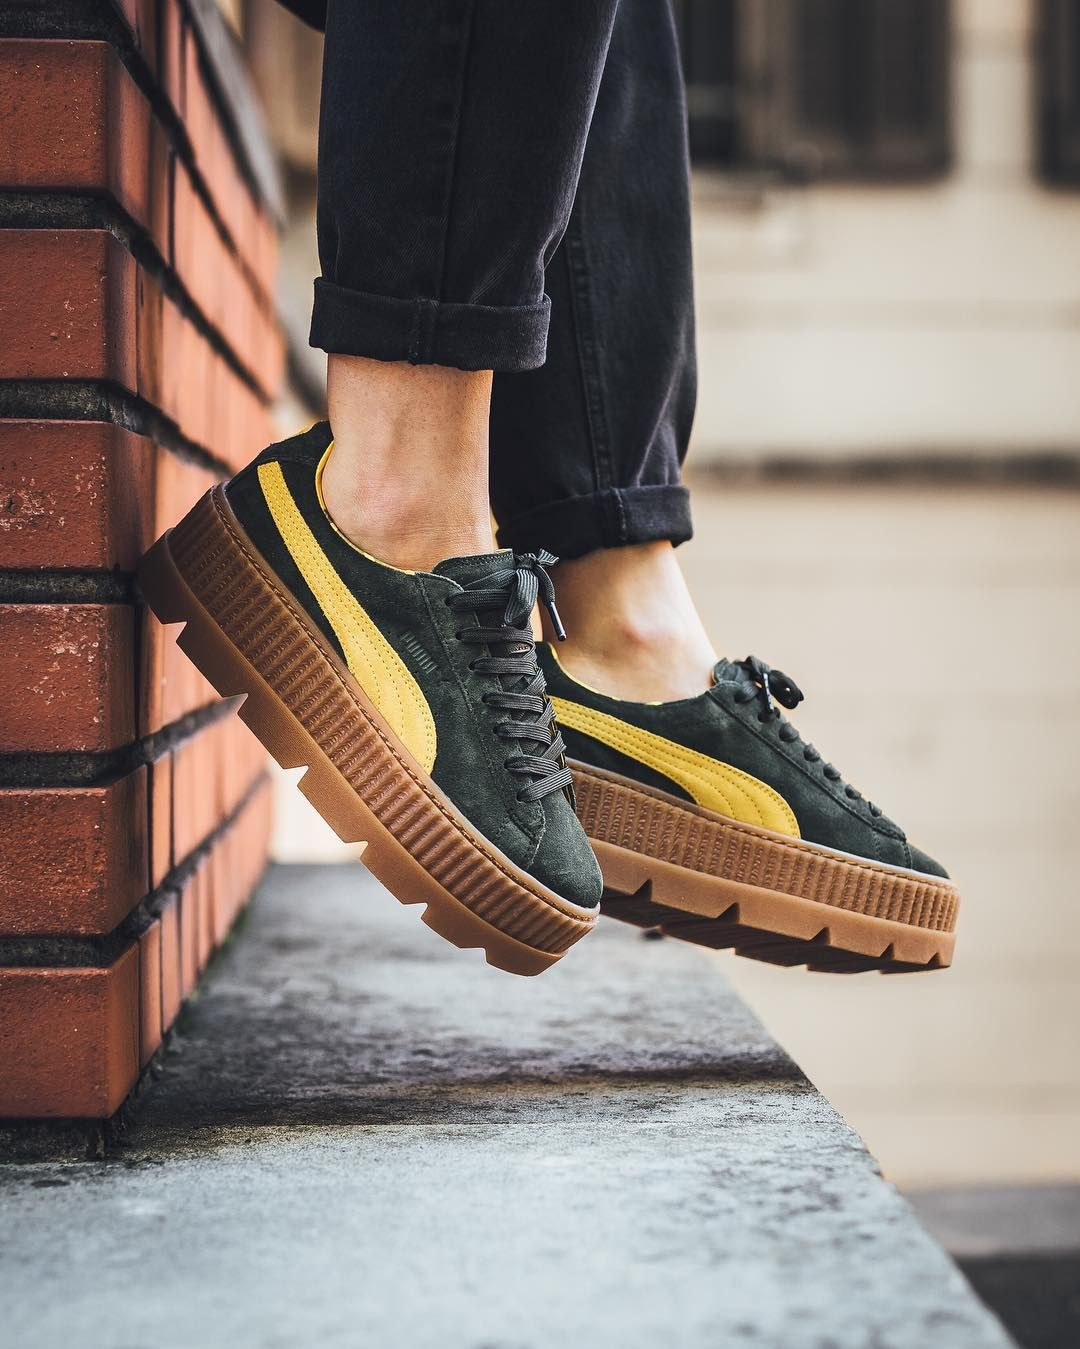 FENTY by Rihanna x PUMA Cleated Creeper